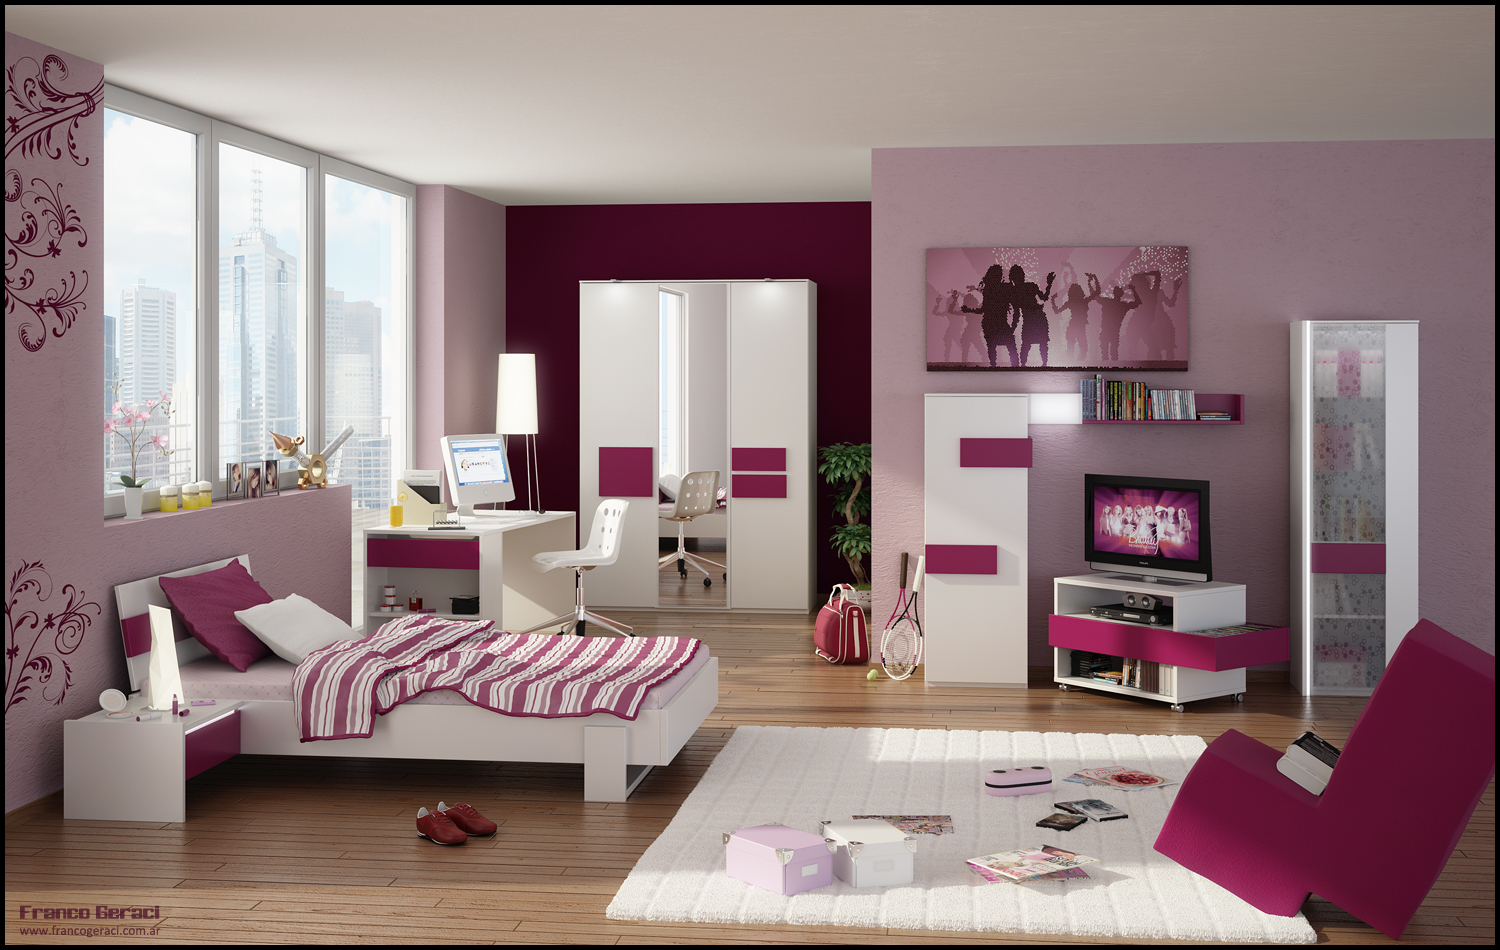 Teenage room designs - Room decoration ideas for teenagers ...